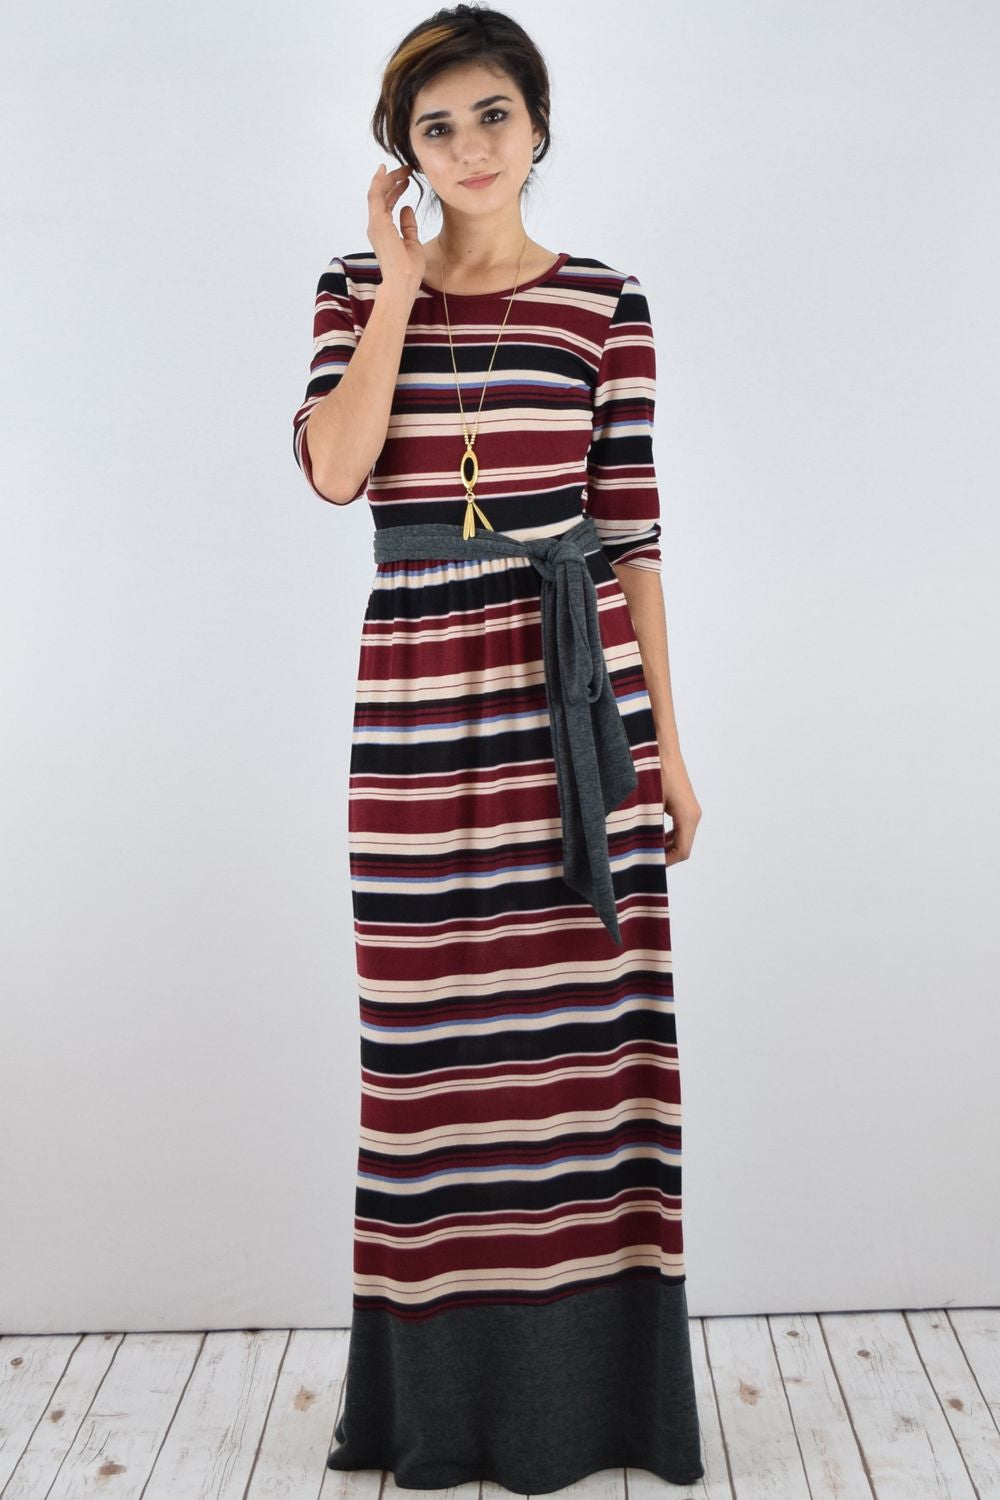 Burgundy Stripe knit Maxi Dress with Sash